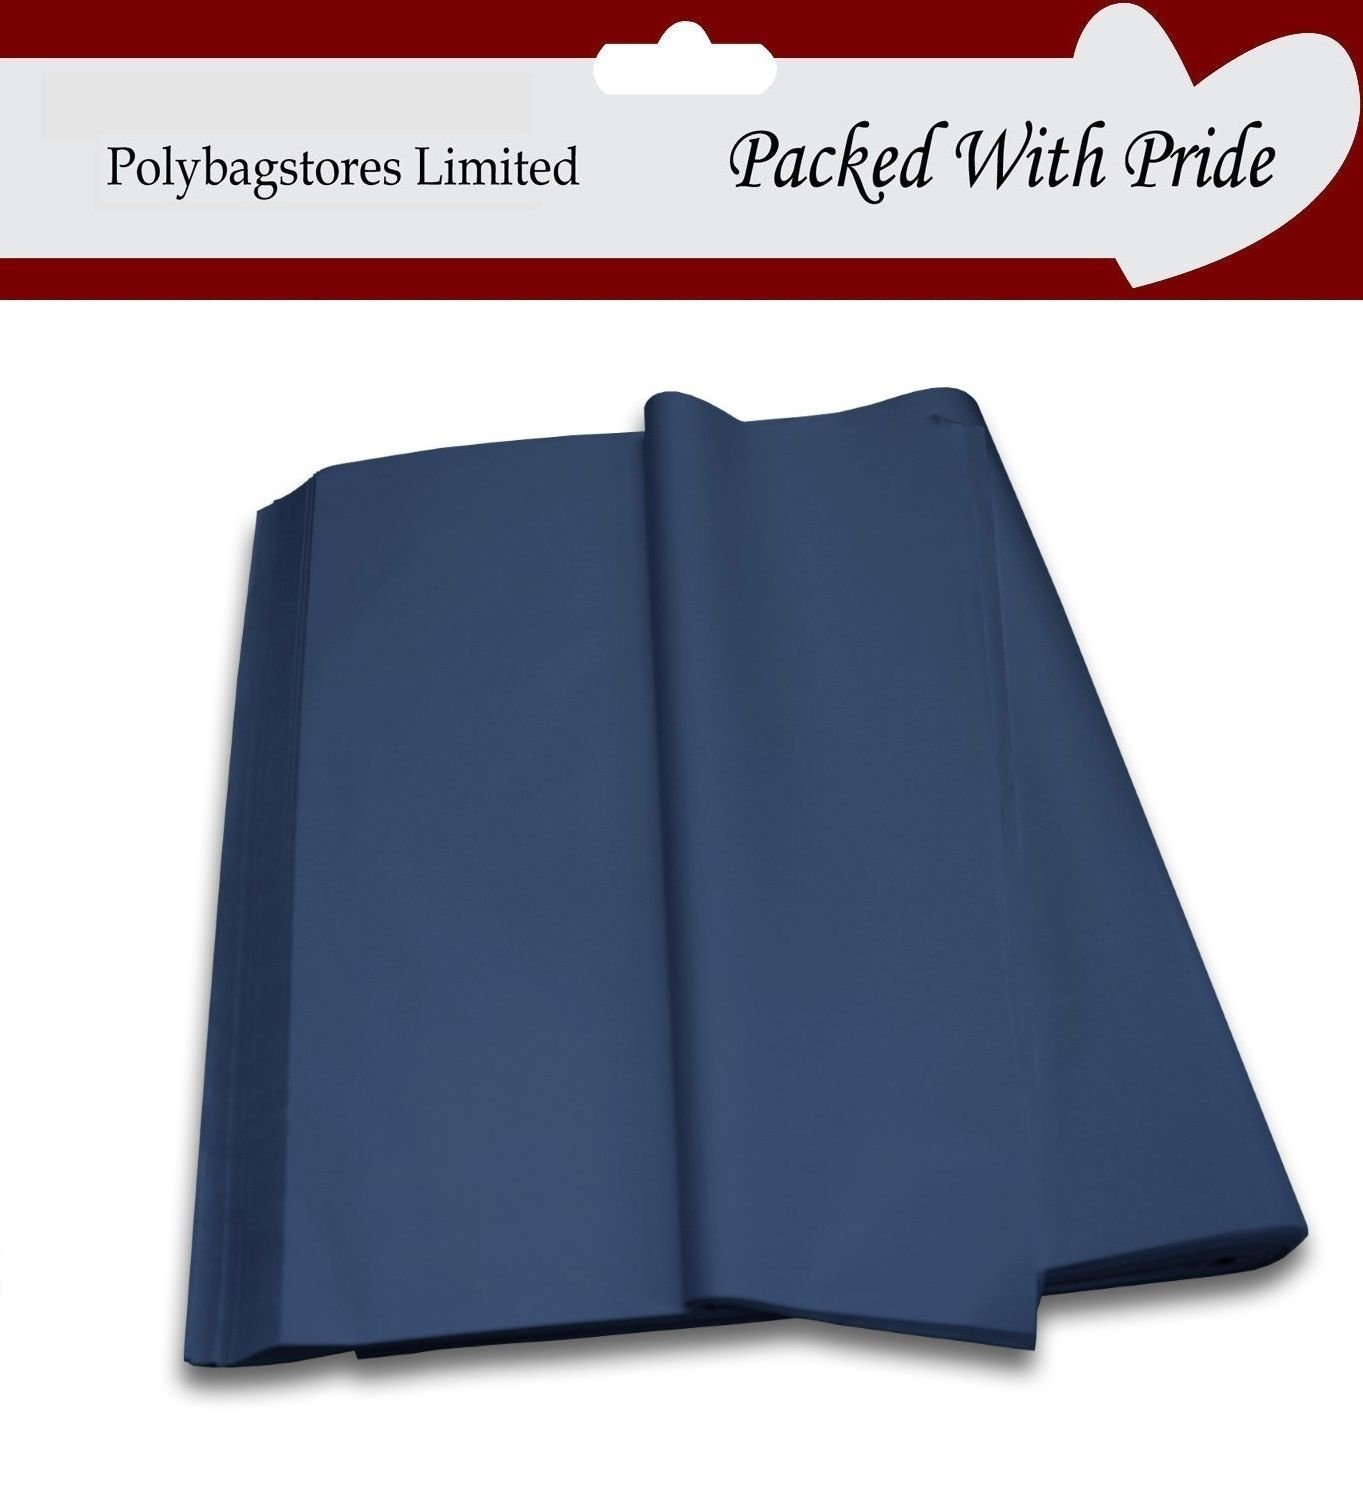 PACK OF 100 SHEETS 750mm x 500mm LUXURY ACID FREE COLOURED TISSUE PAPER- THIS TISSUE PAPER IS PRODUCED AND PACKAGED ESPECIALLY FOR POLYBAGSTORES LIMITED® (Dark Blue)